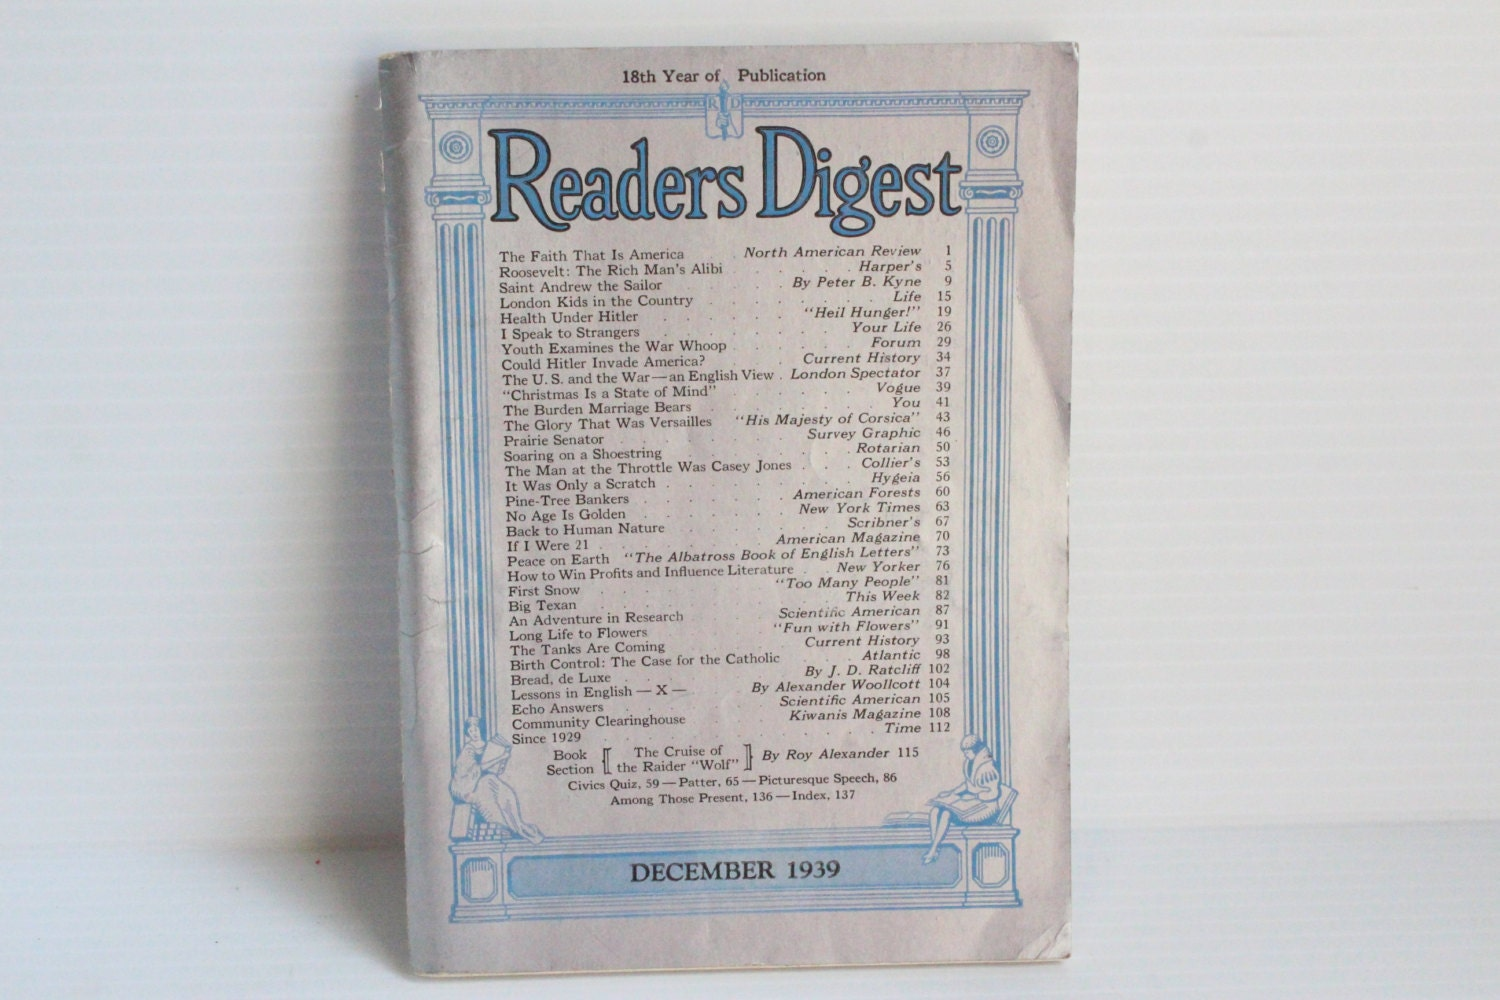 READER'S DIGEST December 1939 Vintage Magazine Vintage